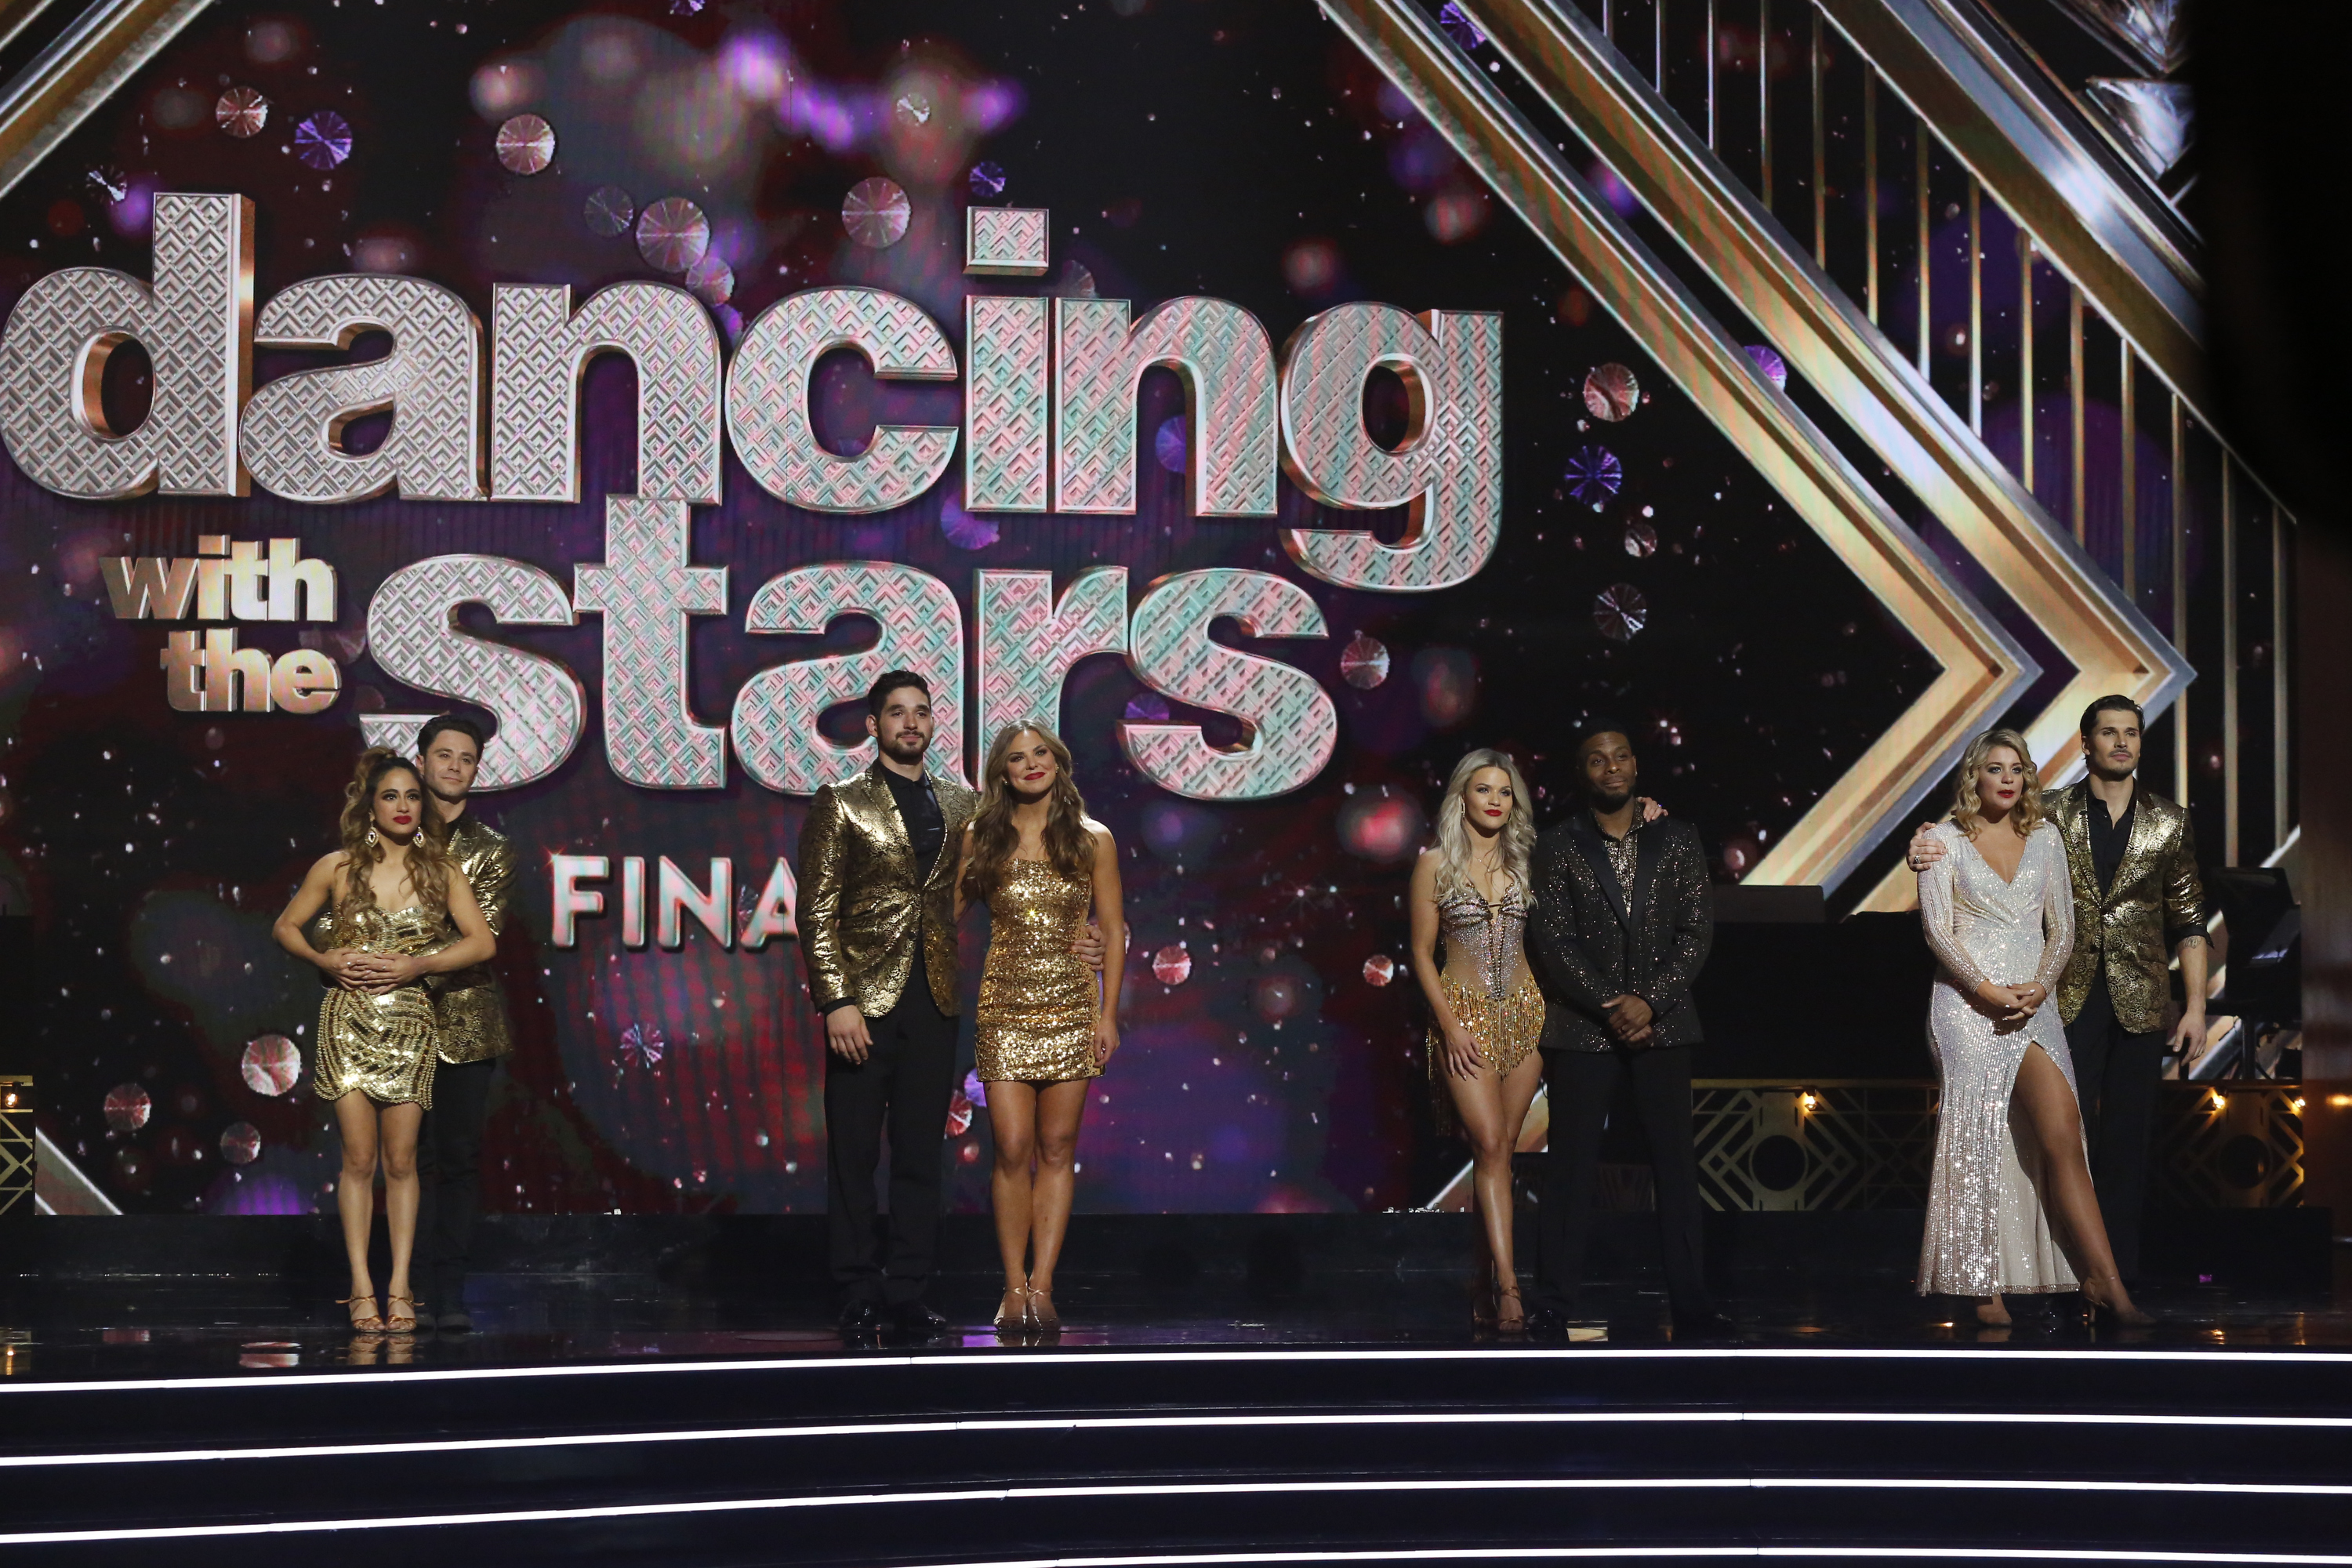 Westlake Legal Group 154255_8671 'Dancing with the Stars' crowns its season 28 champions fox-news/entertainment/dancing-with-the-stars fox news fnc/entertainment fnc Danielle Wallace article 6d2ce351-7160-5307-abab-4159d396e784